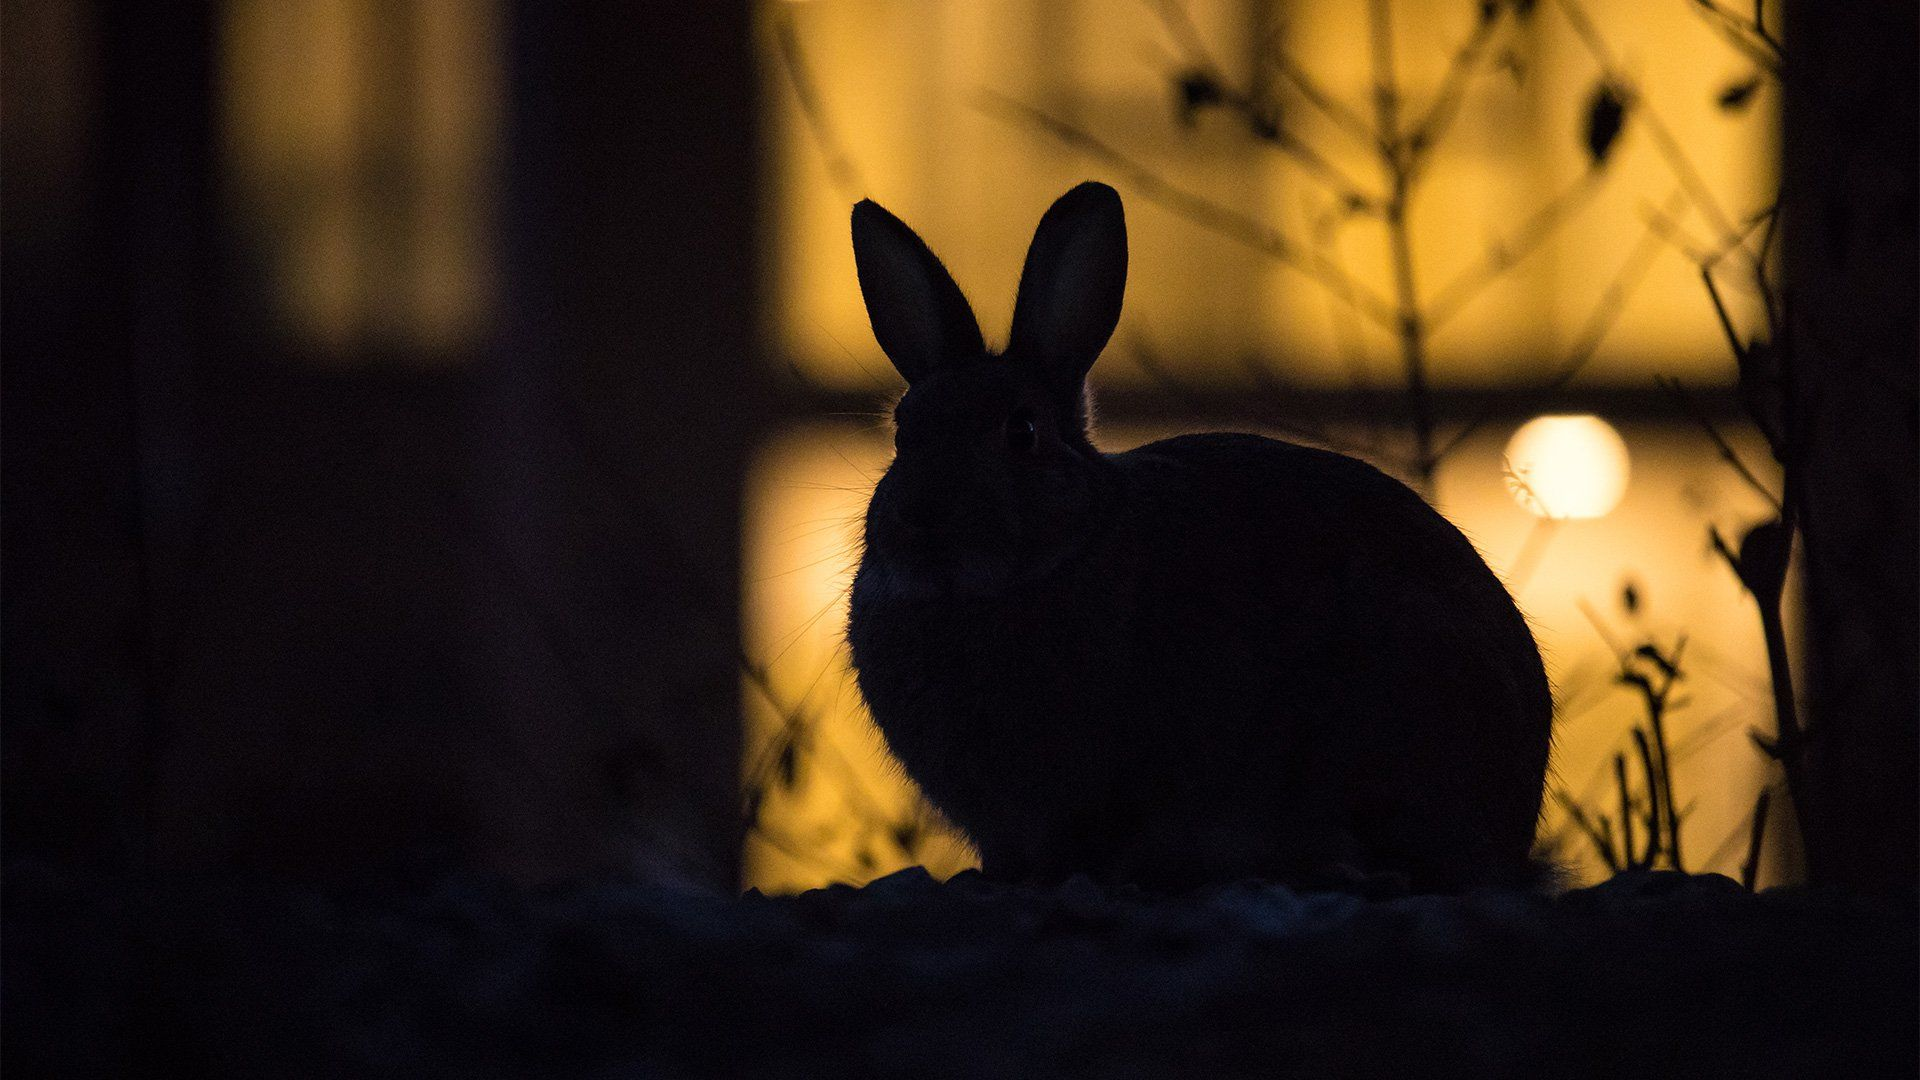 A silhouette of a rabbit against an urban backdrop.